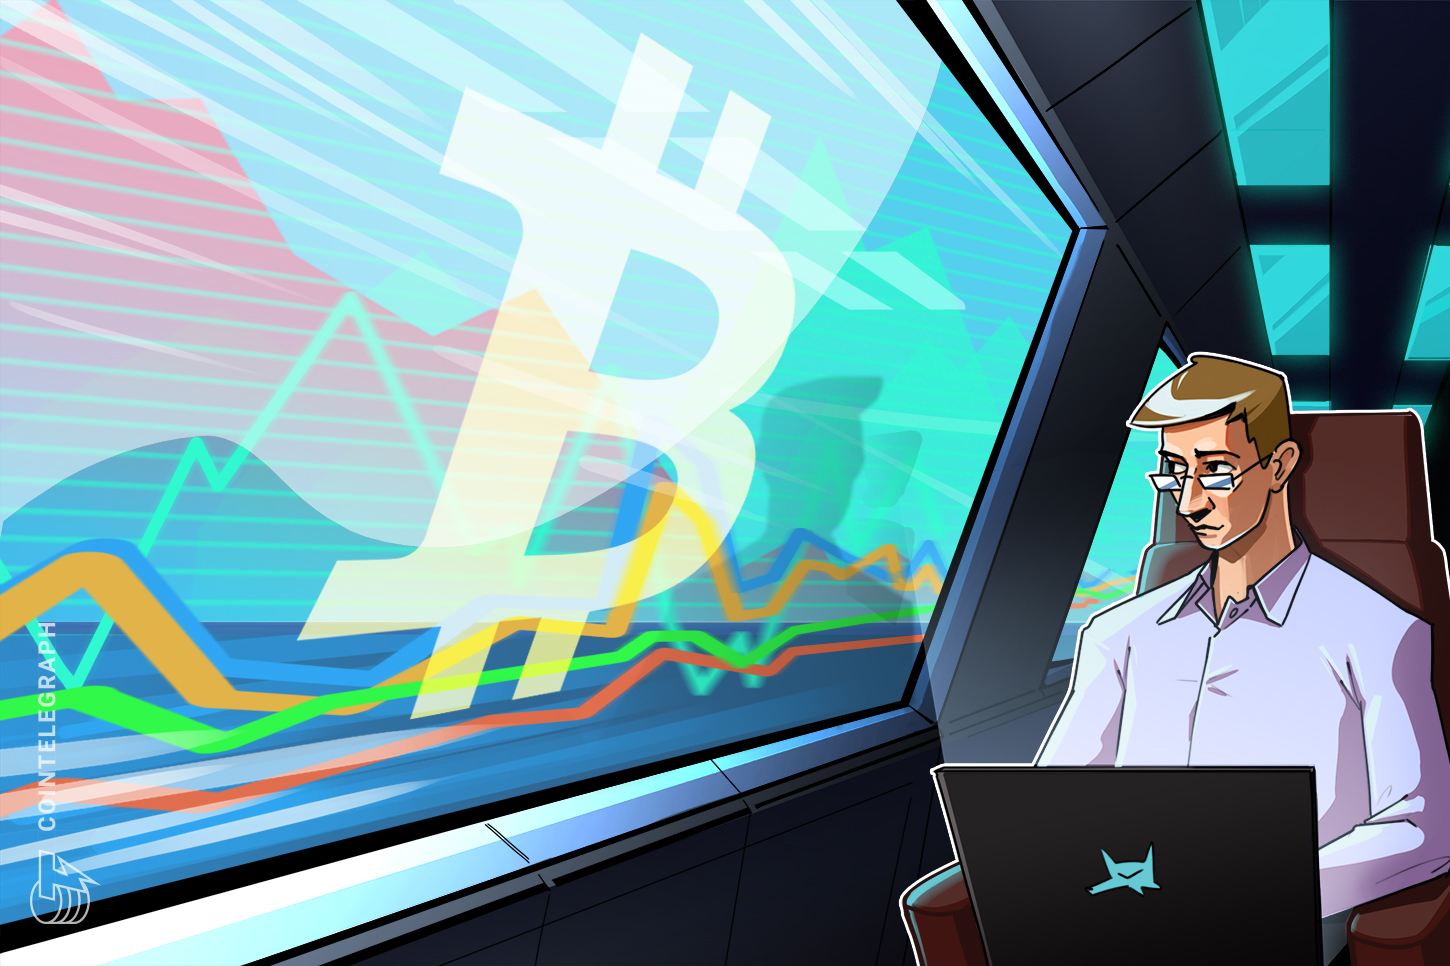 Catch the Bitcoin dip? BTC price pares losses with a fresh surge to $57K